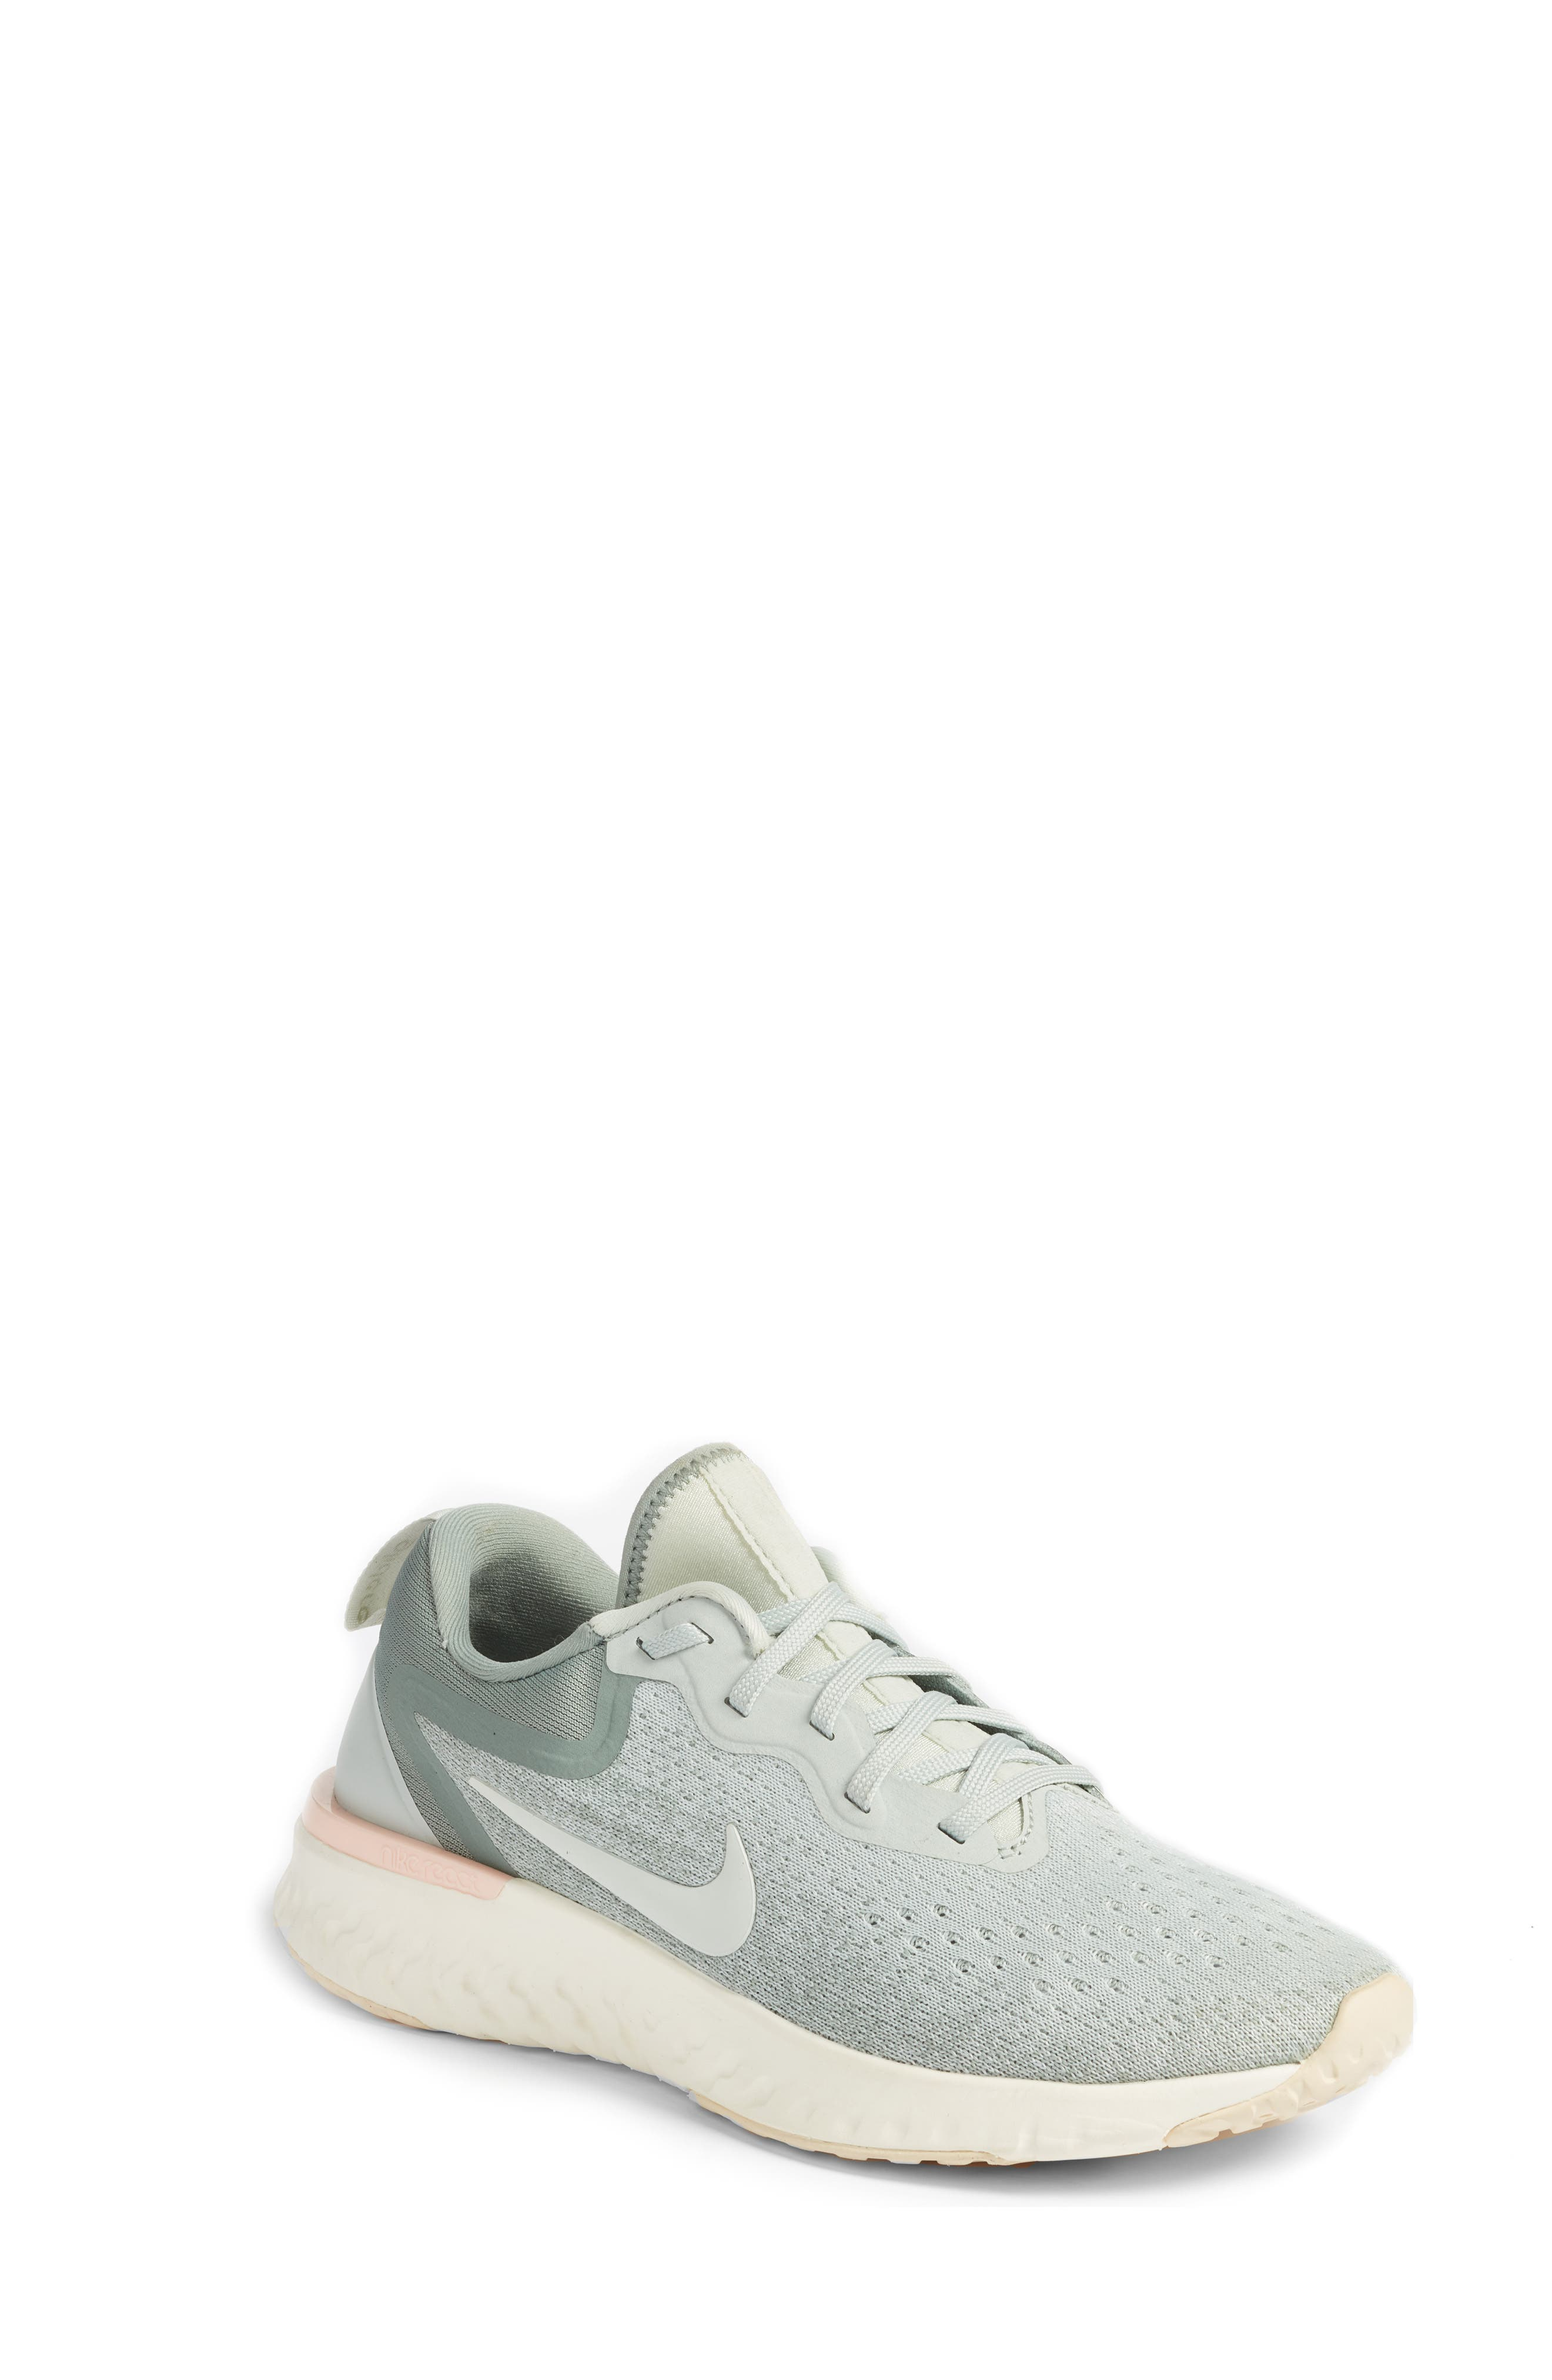 Odyssey React Running Shoe,                         Main,                         color, LIGHT SILVER/ SAIL/ MICA GREEN